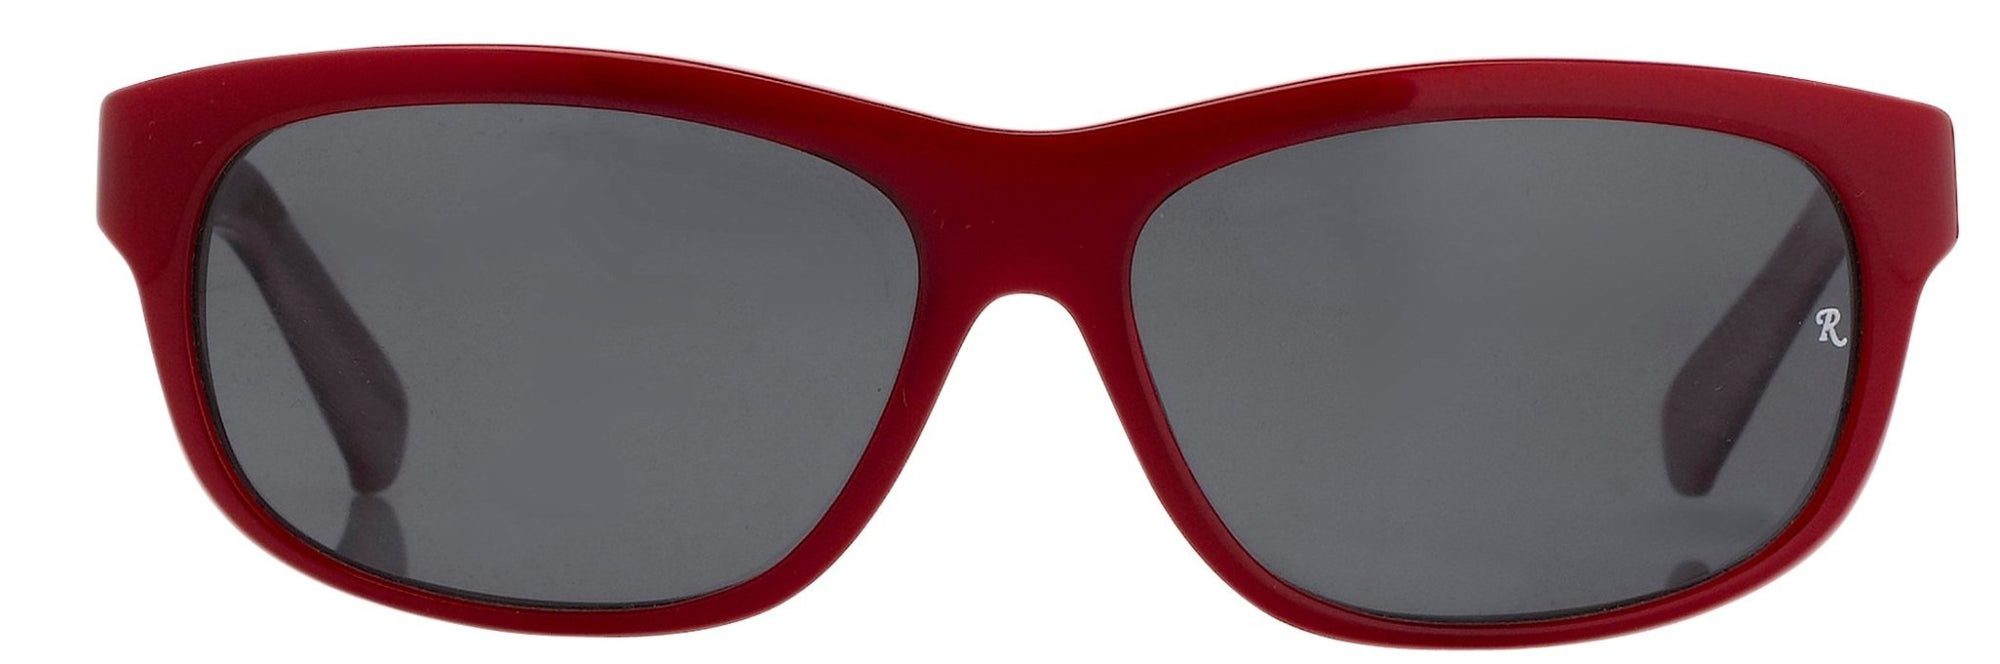 Raf Simons Sunglasses Oval Red Pearl and Grey Lenses - RAF15C3SUN - Watches & Crystals